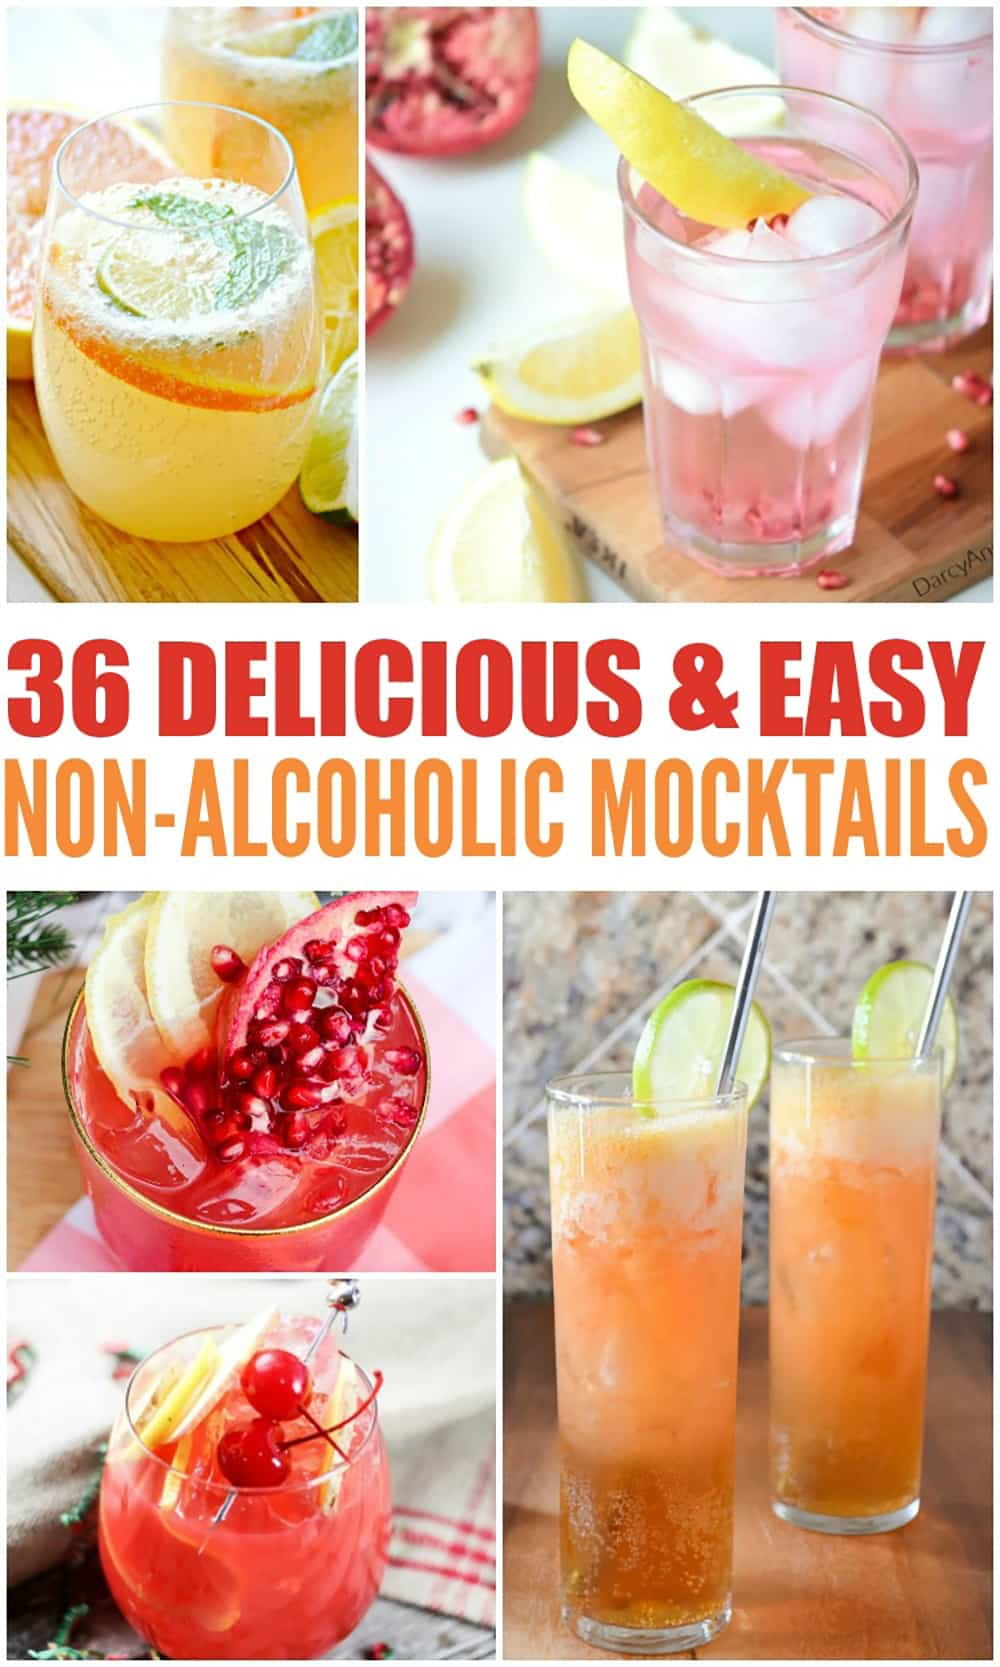 These easy mocktail recipes are SO good! Fresh, simple, and perfect for the whole family.